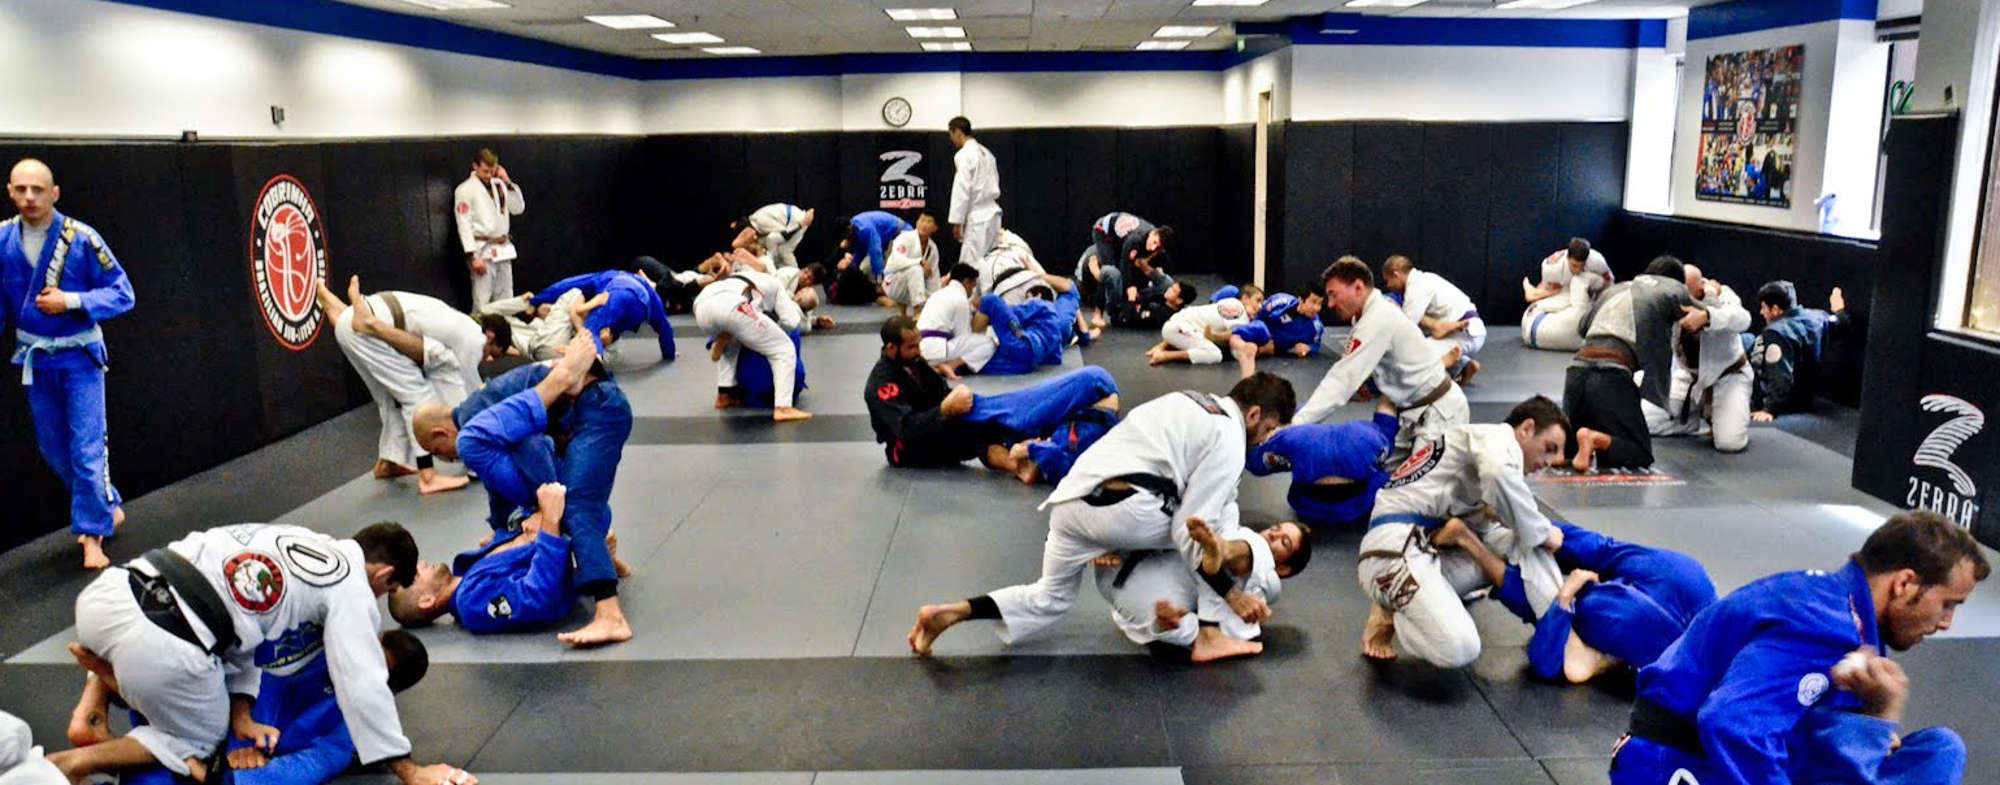 jui-jitsu---training-edited